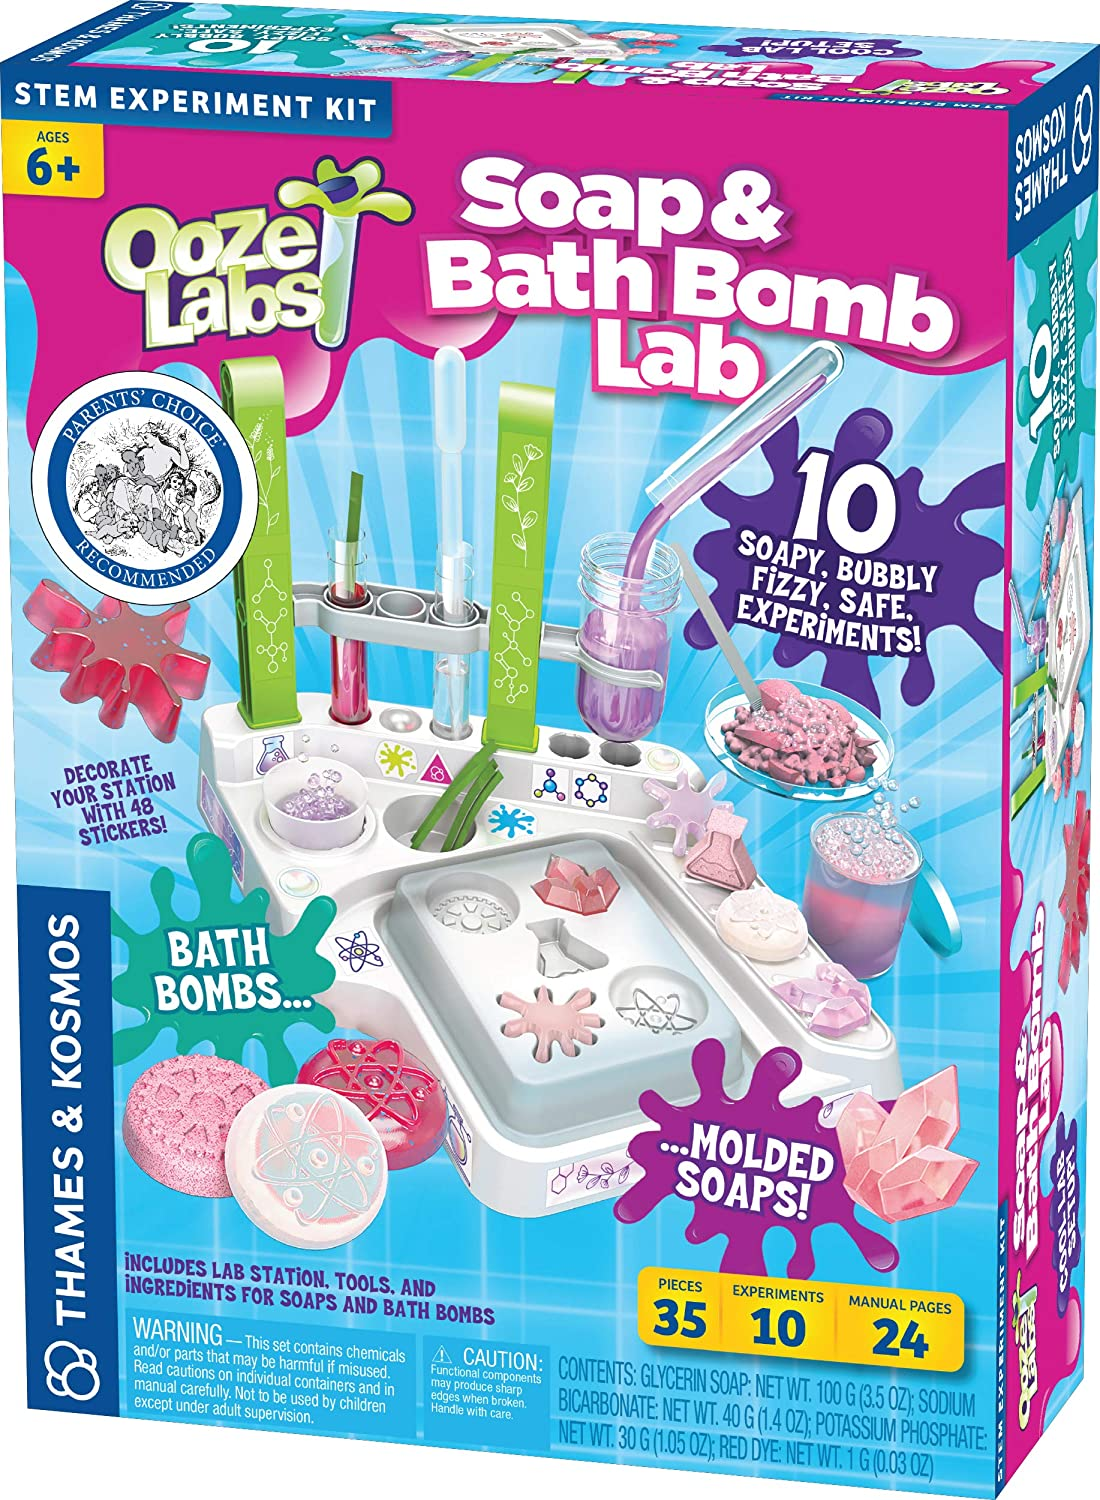 Soap & Bath Bomb Lab Ooze Labs